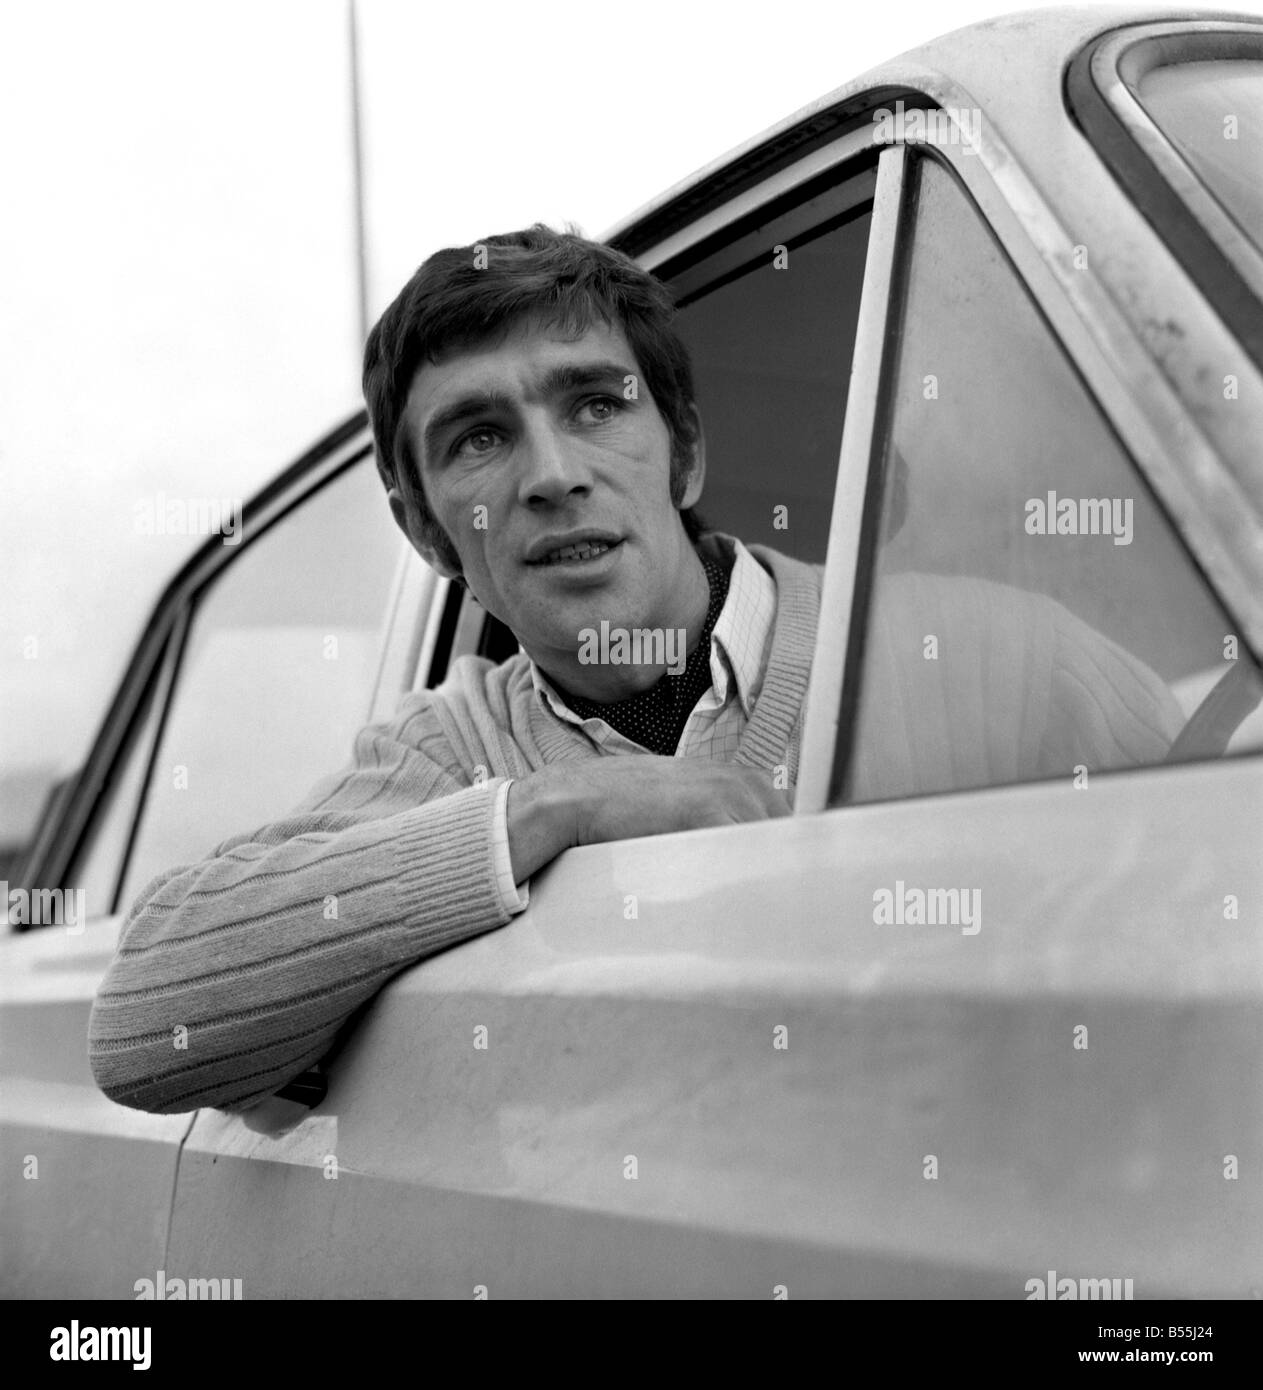 Motor: Cars. 31 year old Bryan Nash of Nunhead, S.E.15 with his 1966 MK1 Ford Cortina. December 1969 Z12139-001 Stock Photo